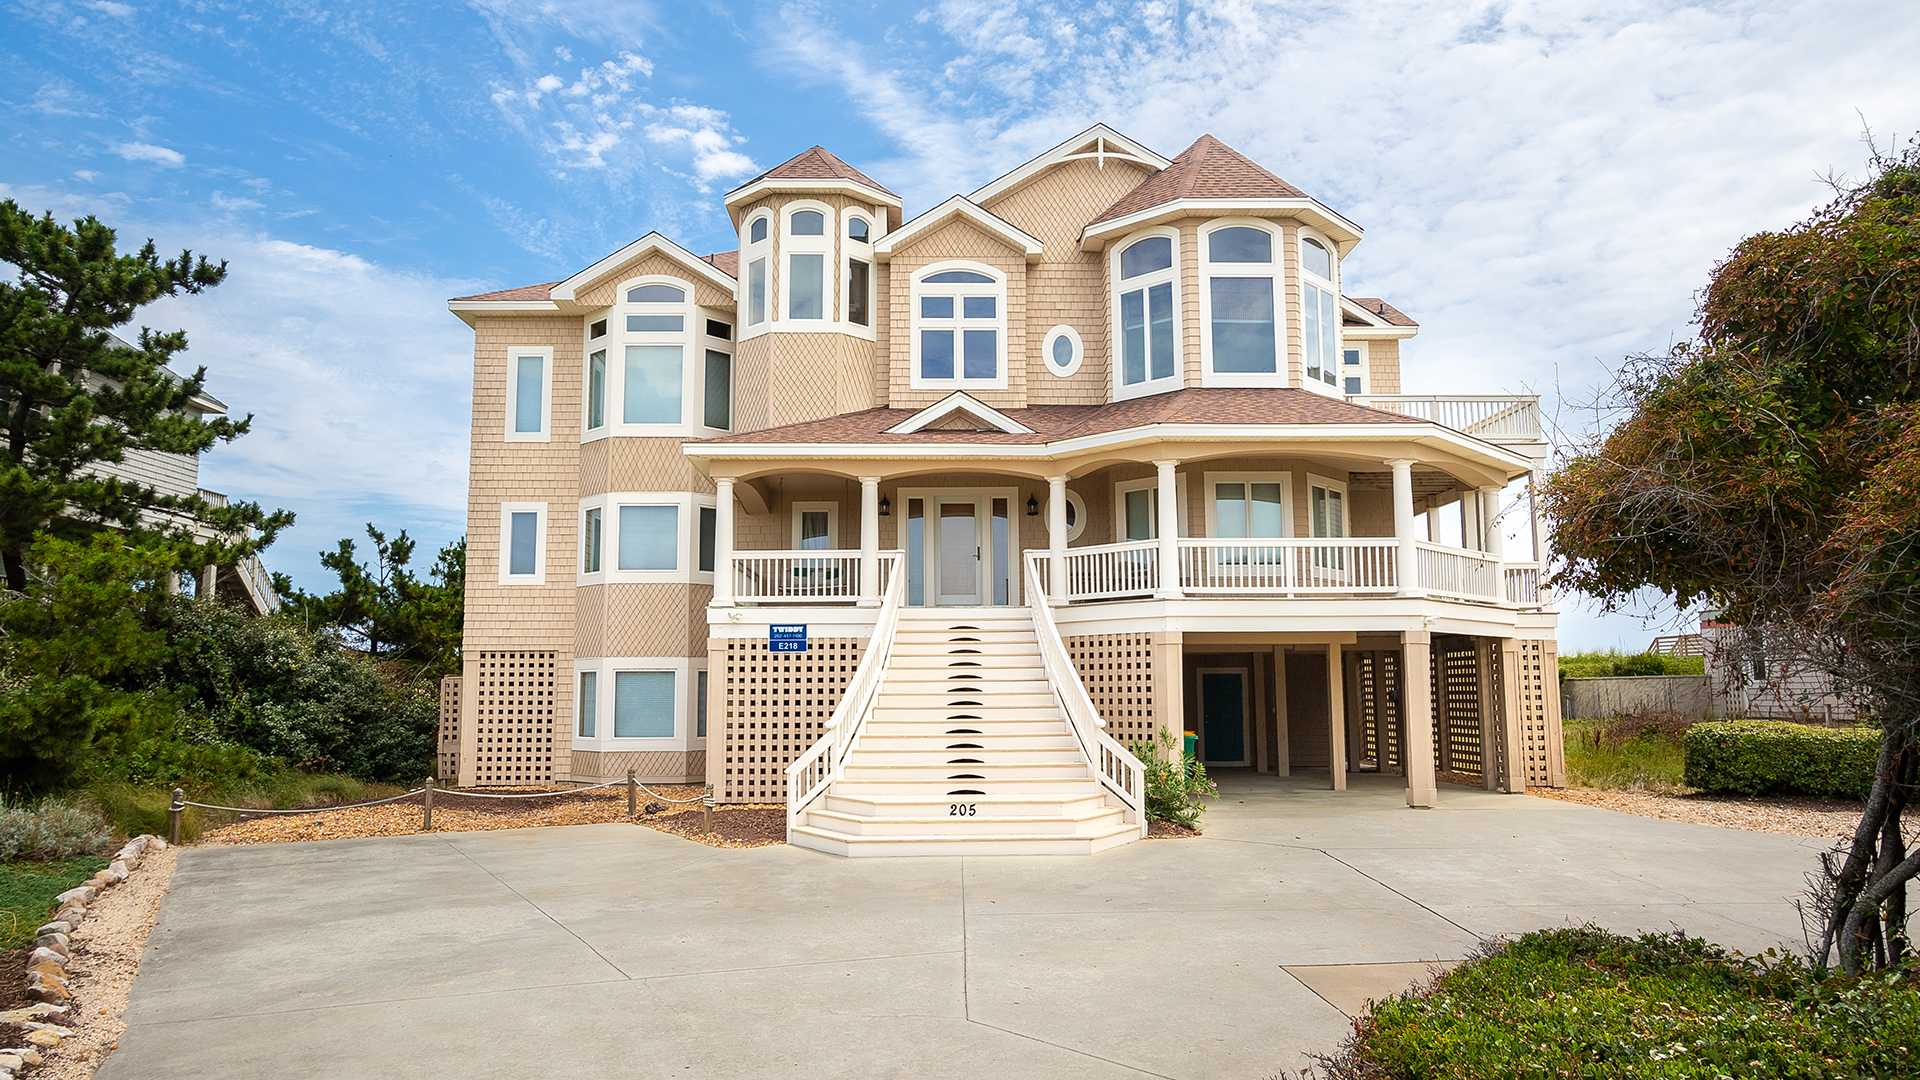 Big Nice House On The Beach everyone will be able to own big beautiful quot dream quot homes